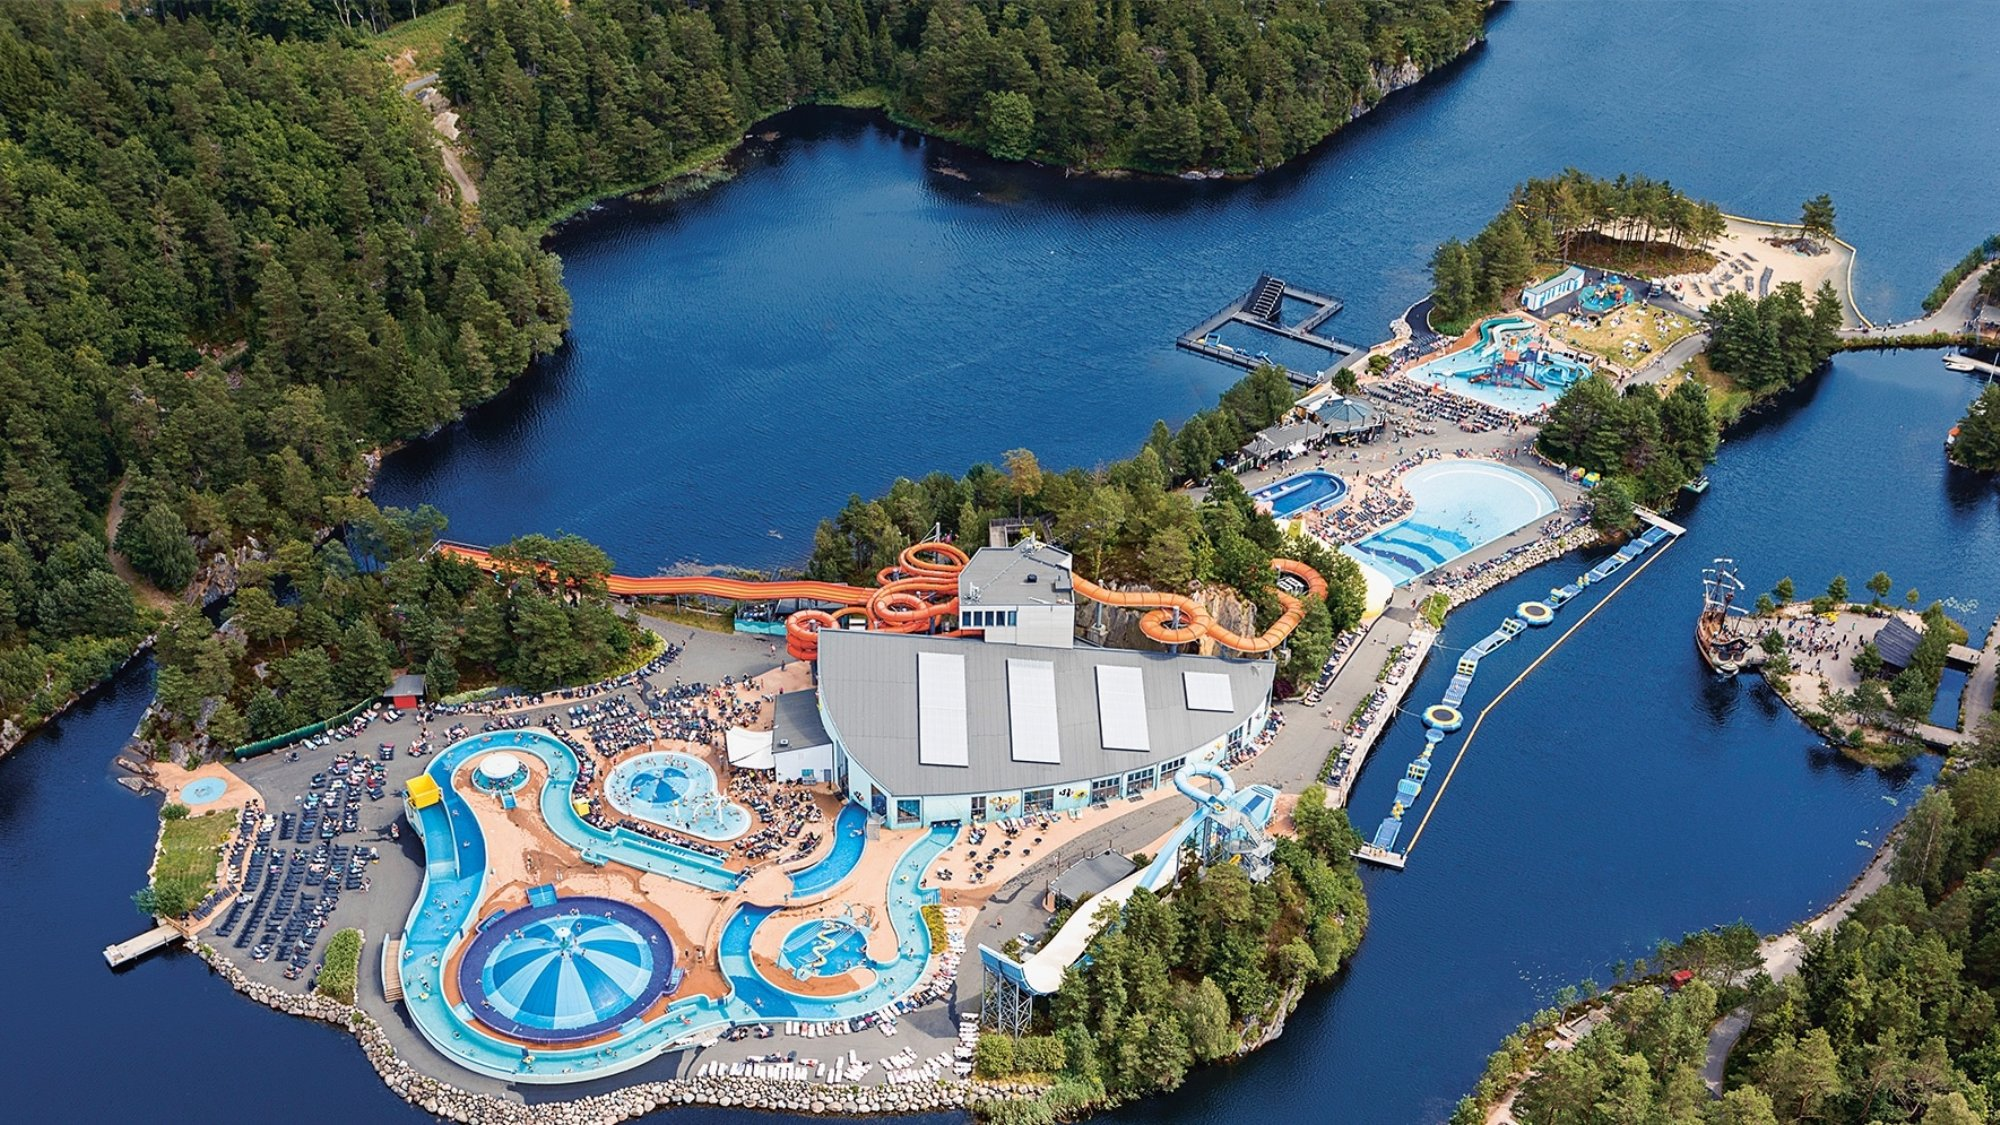 aerial view of a theme park